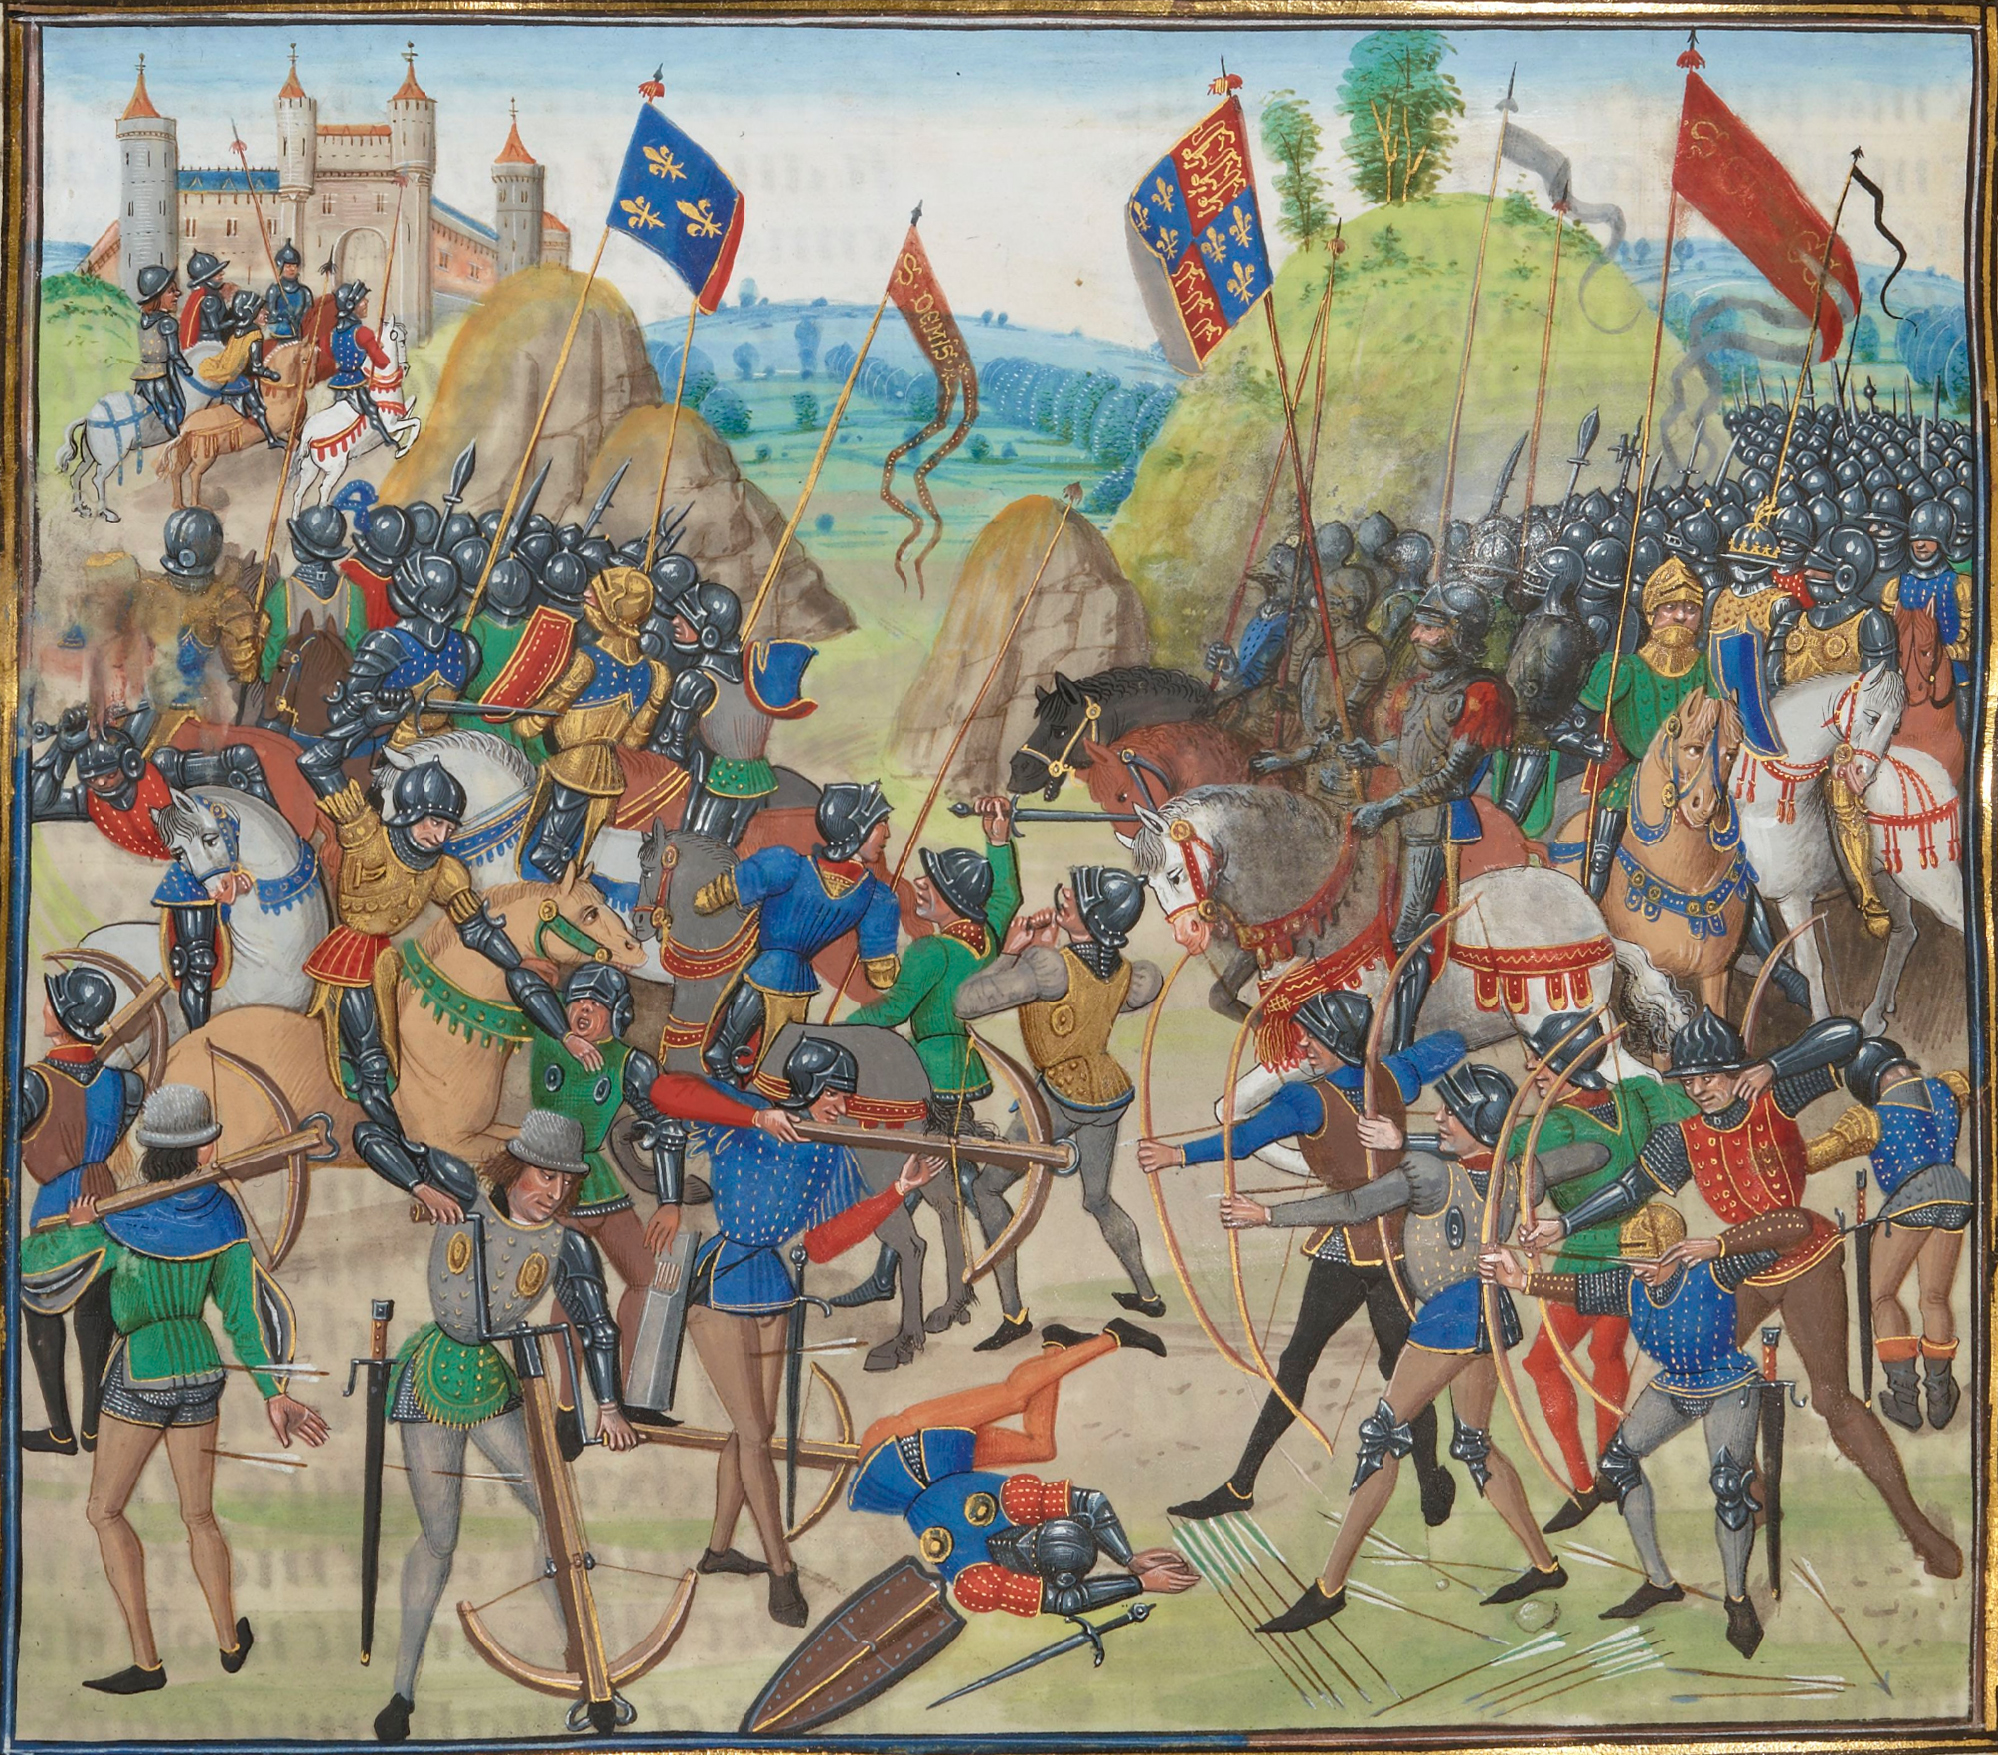 http://upload.wikimedia.org/wikipedia/commons/2/24/Battle_of_crecy_froissart.jpg